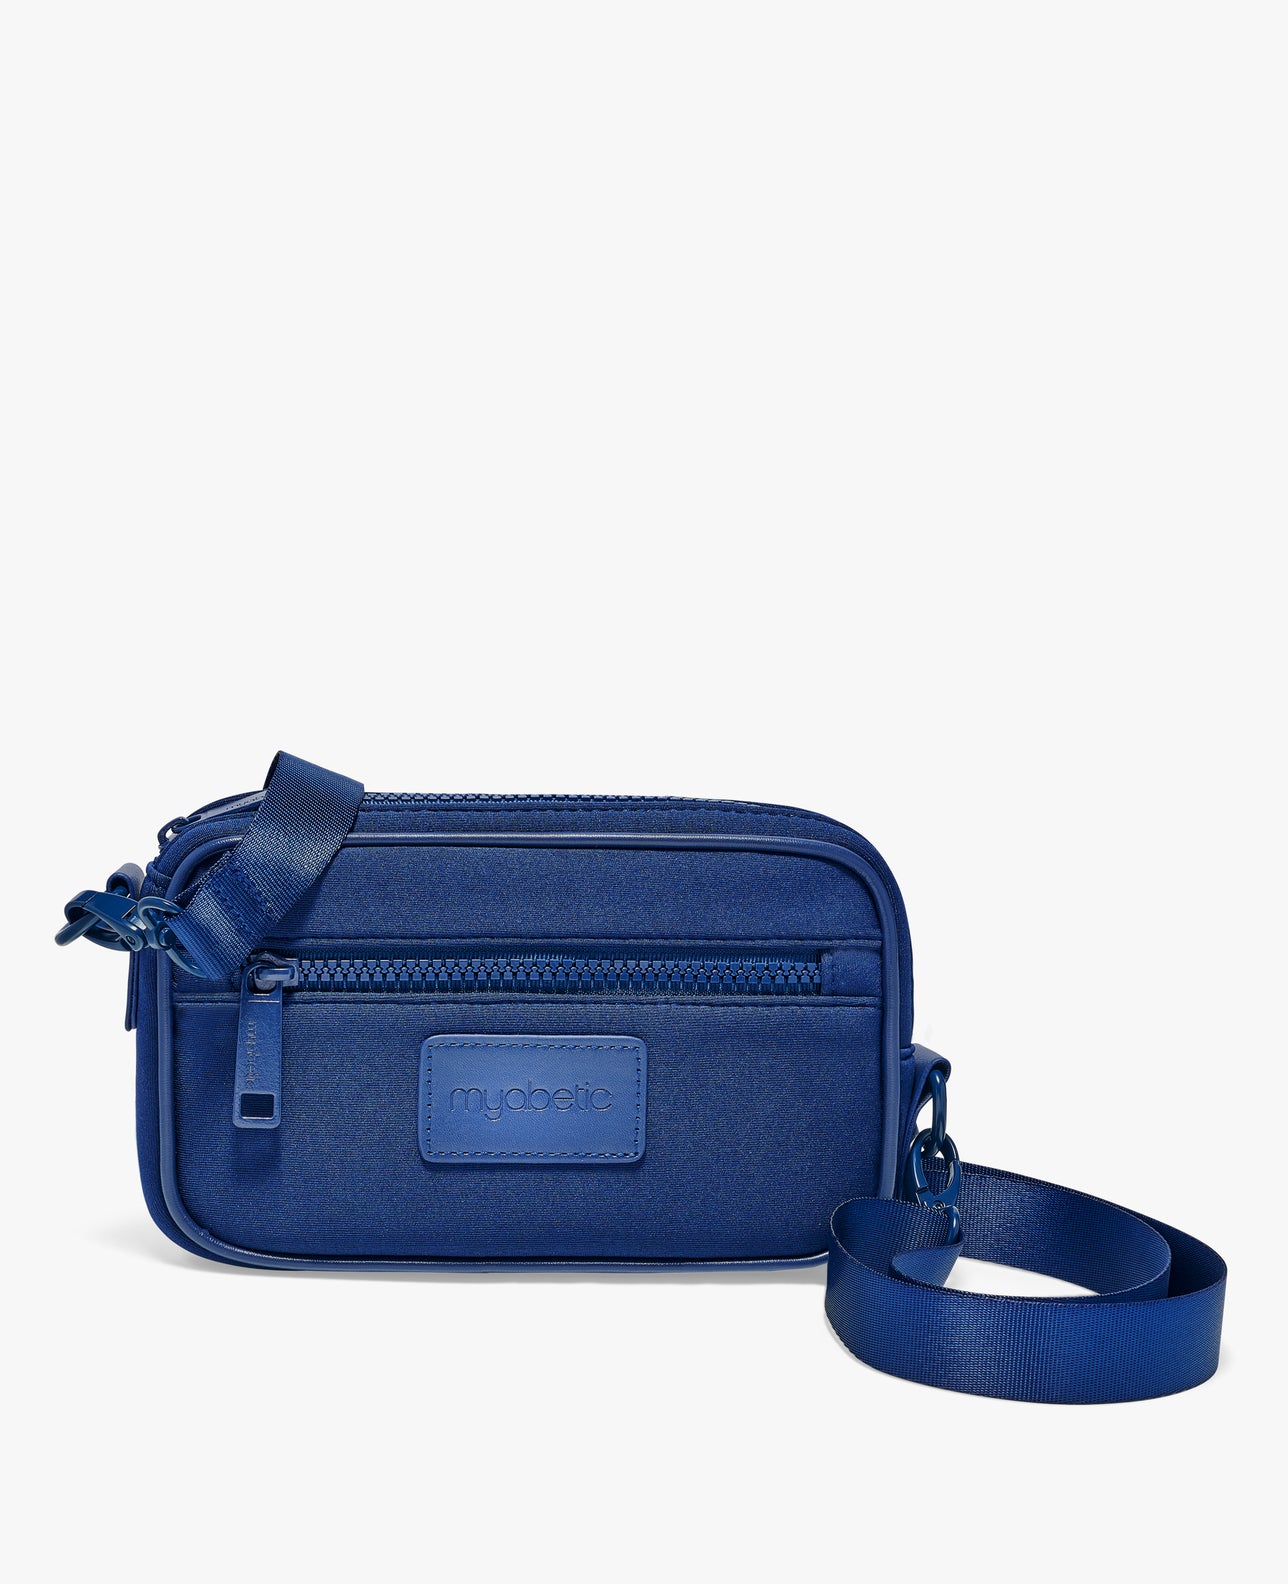 color:navy neoprene